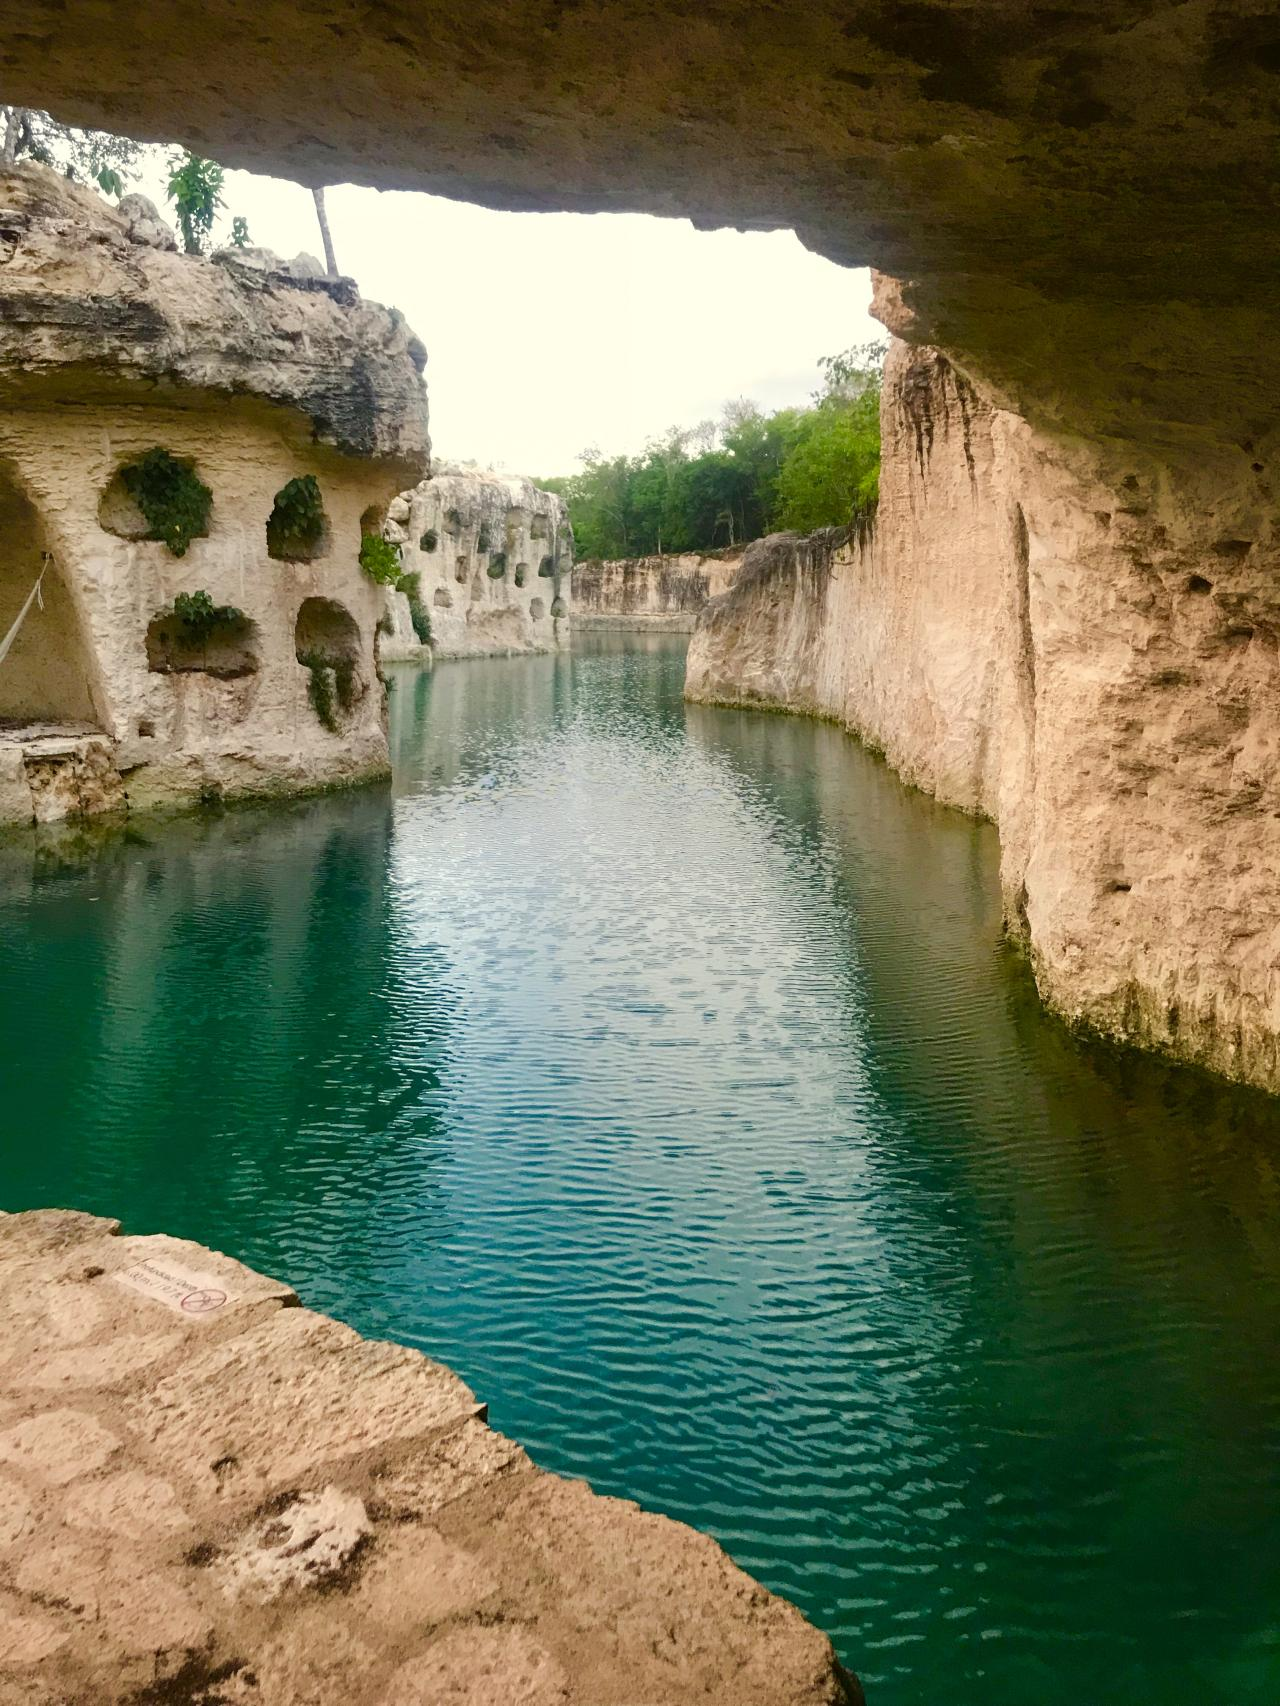 This river is magical with caves all along the way.